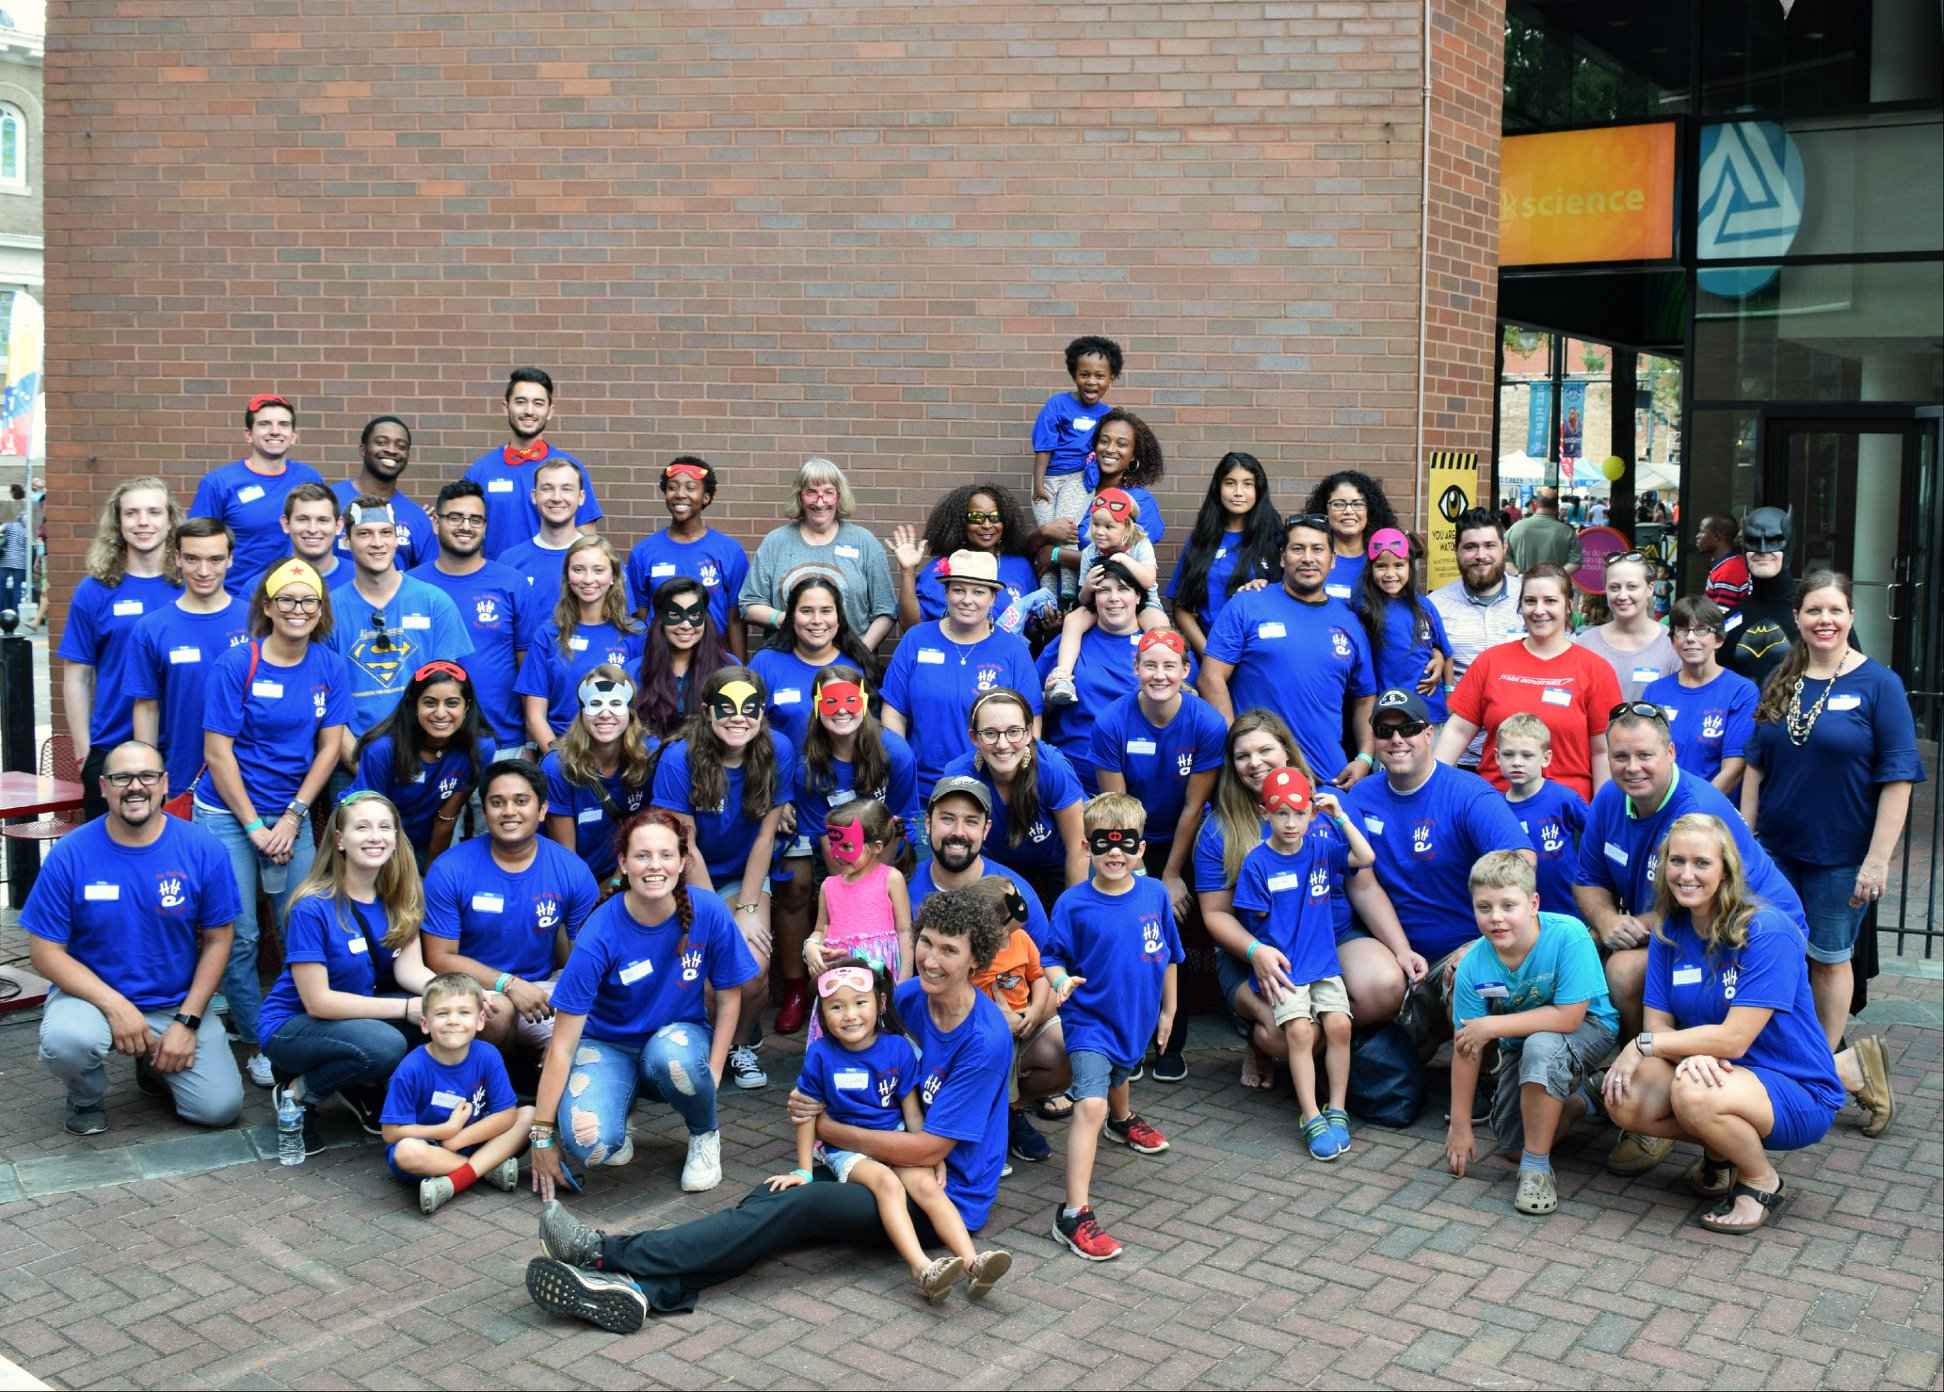 Group photo from the Fall 2018 Family-Get-Together at the Discovery Place Charlotte.